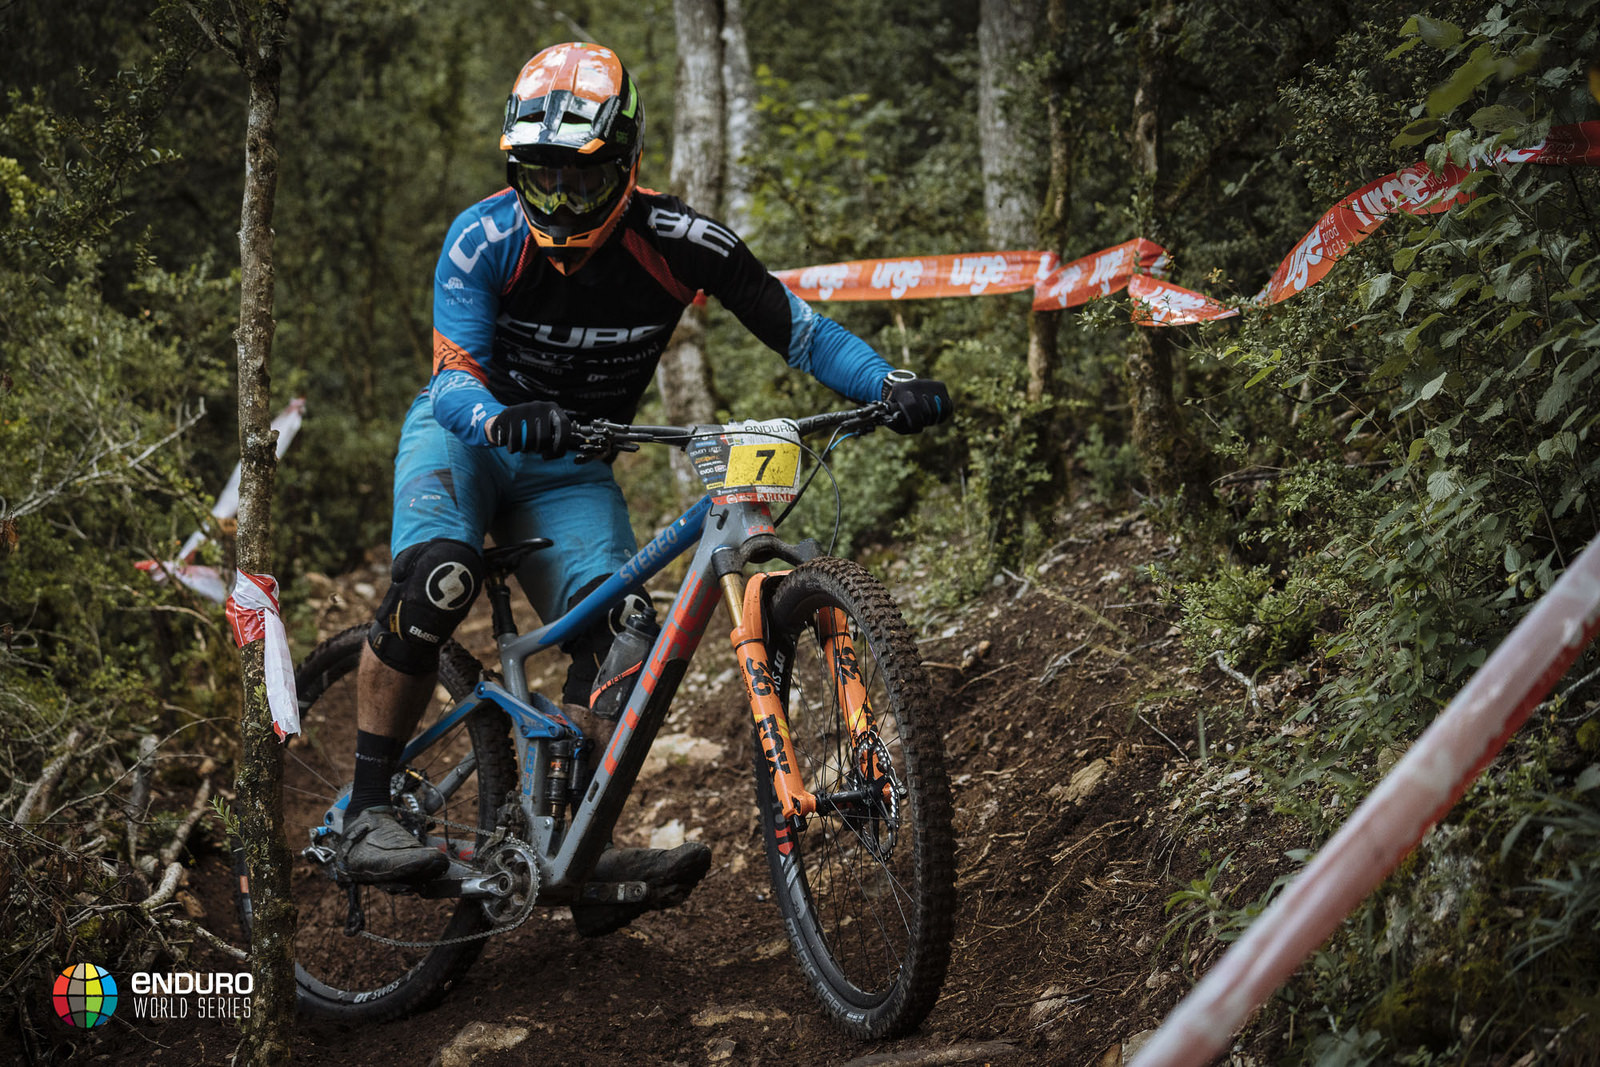 Enduro World Series Round No. 5